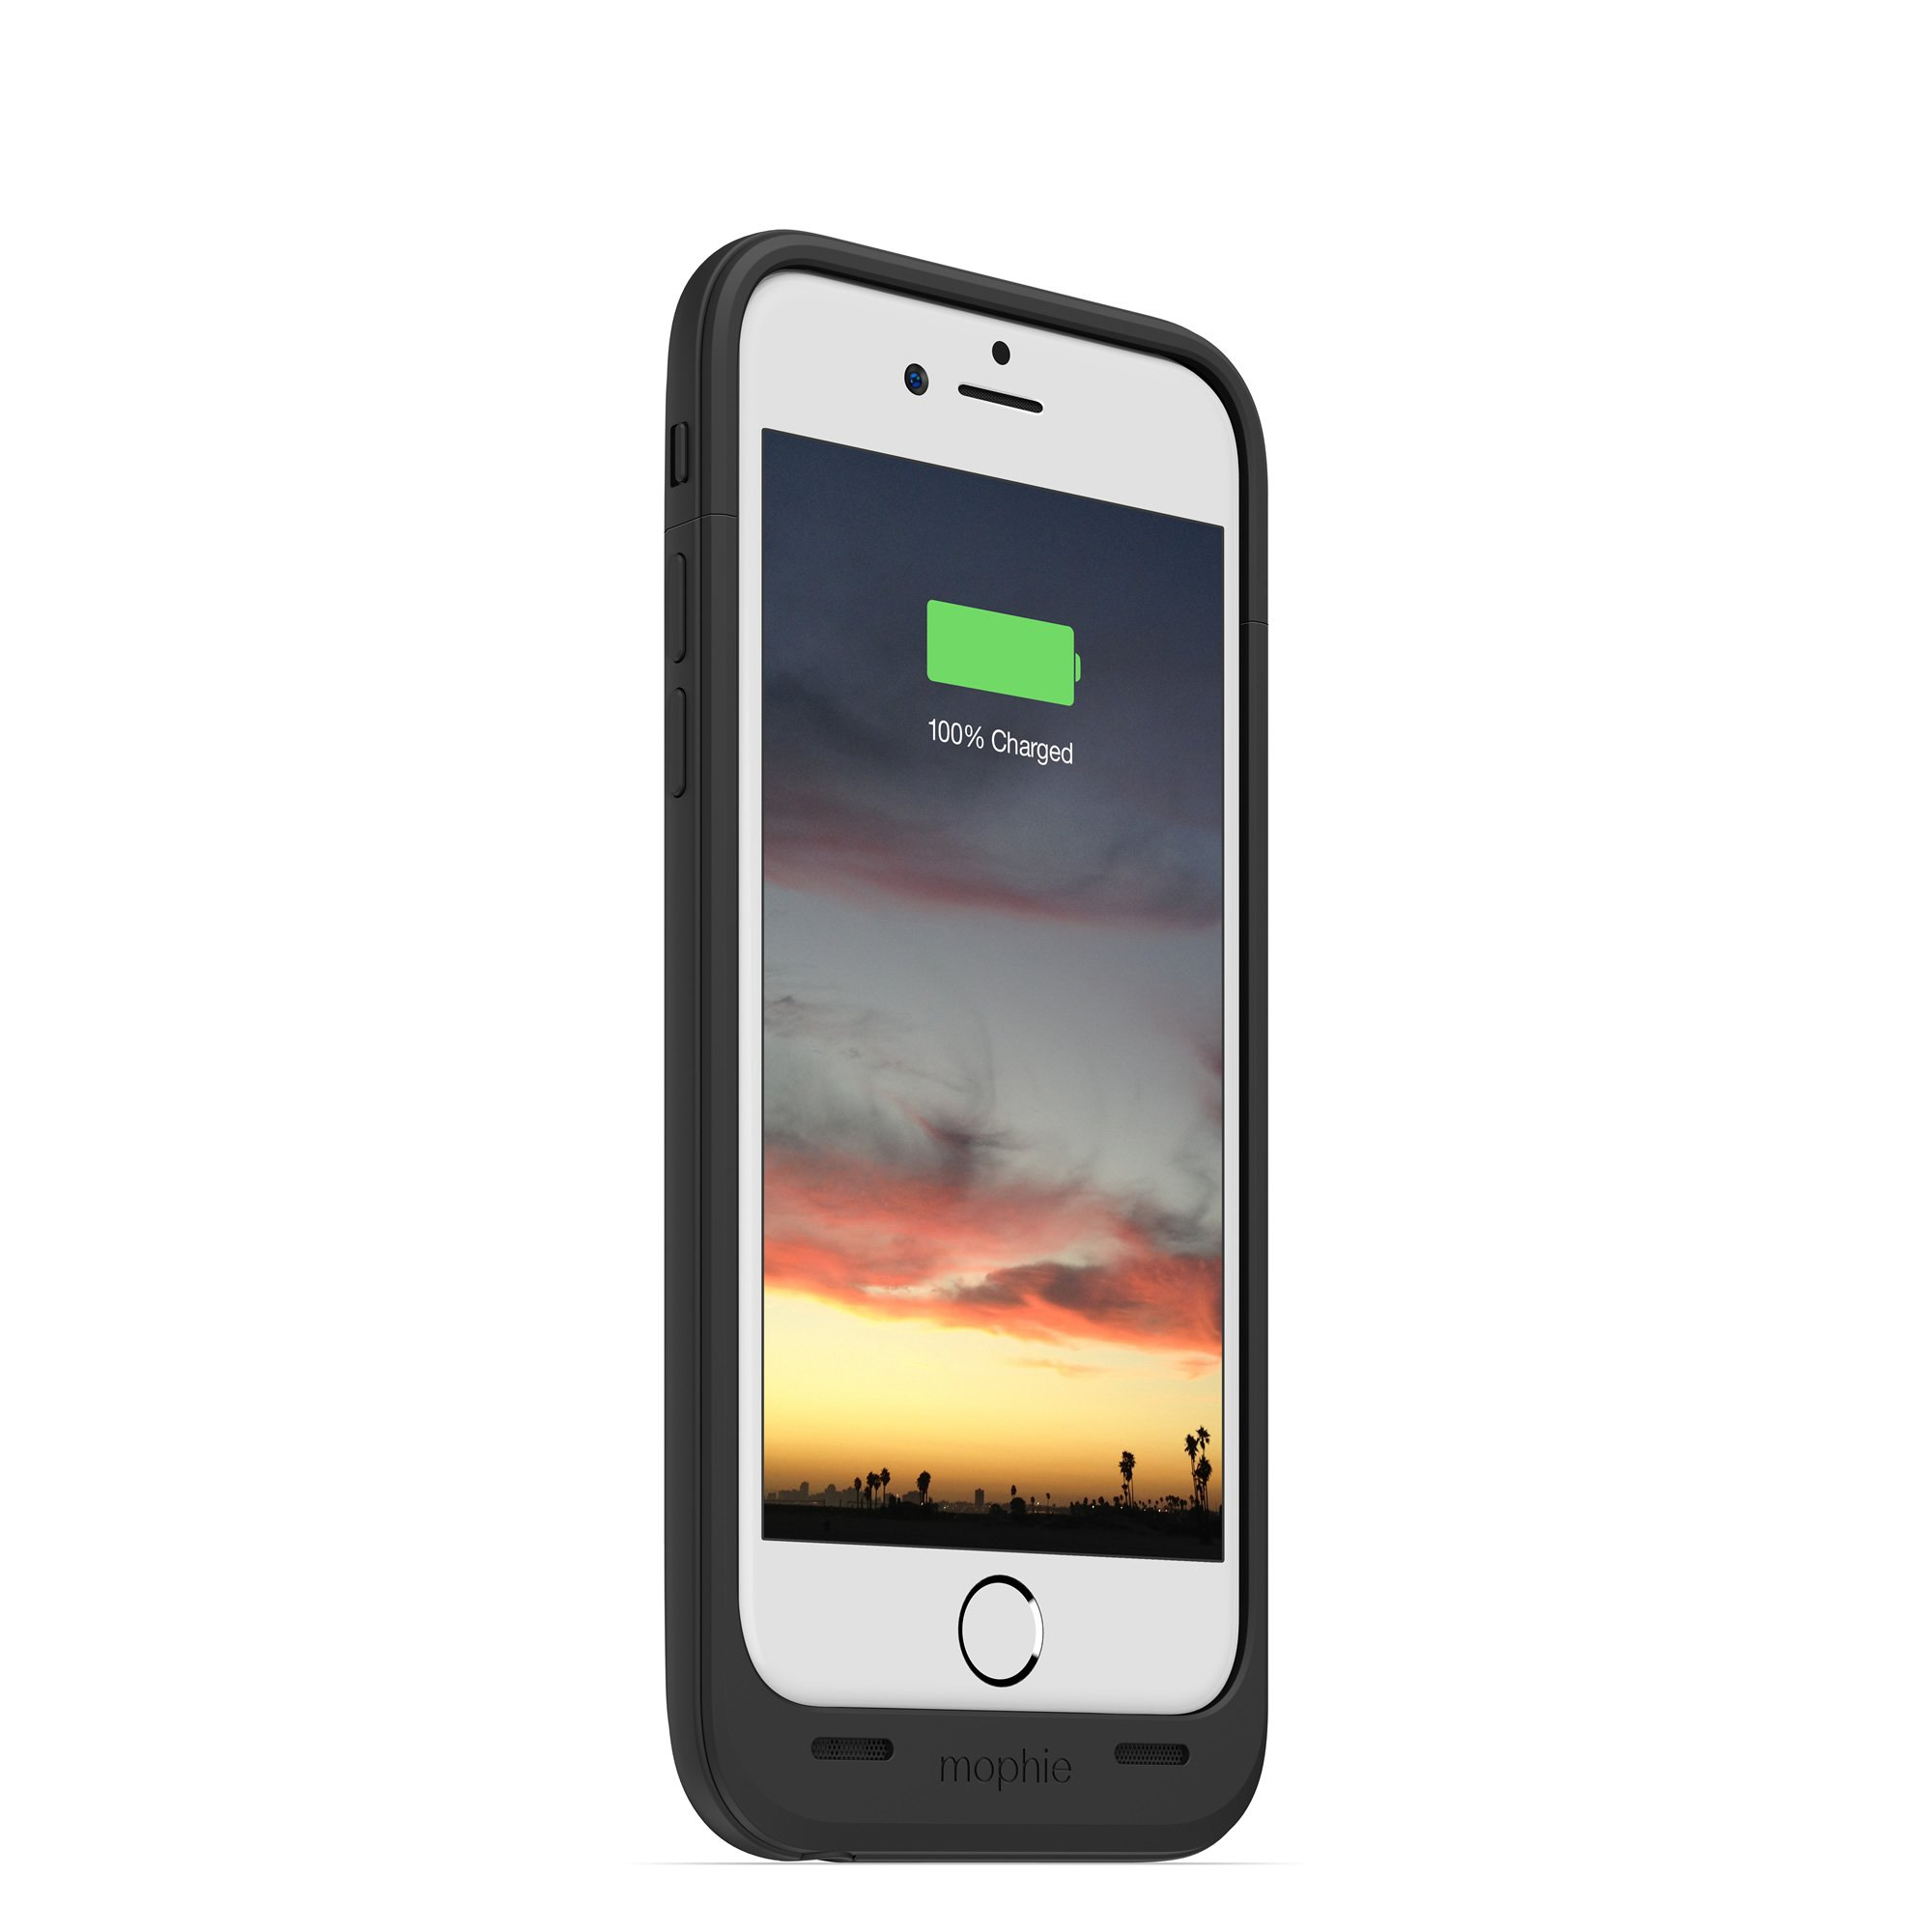 mophie juice pack air - Slim Protective Mobile Battery Pack Case for iPhone 6/6s - Black by mophie (Image #10)